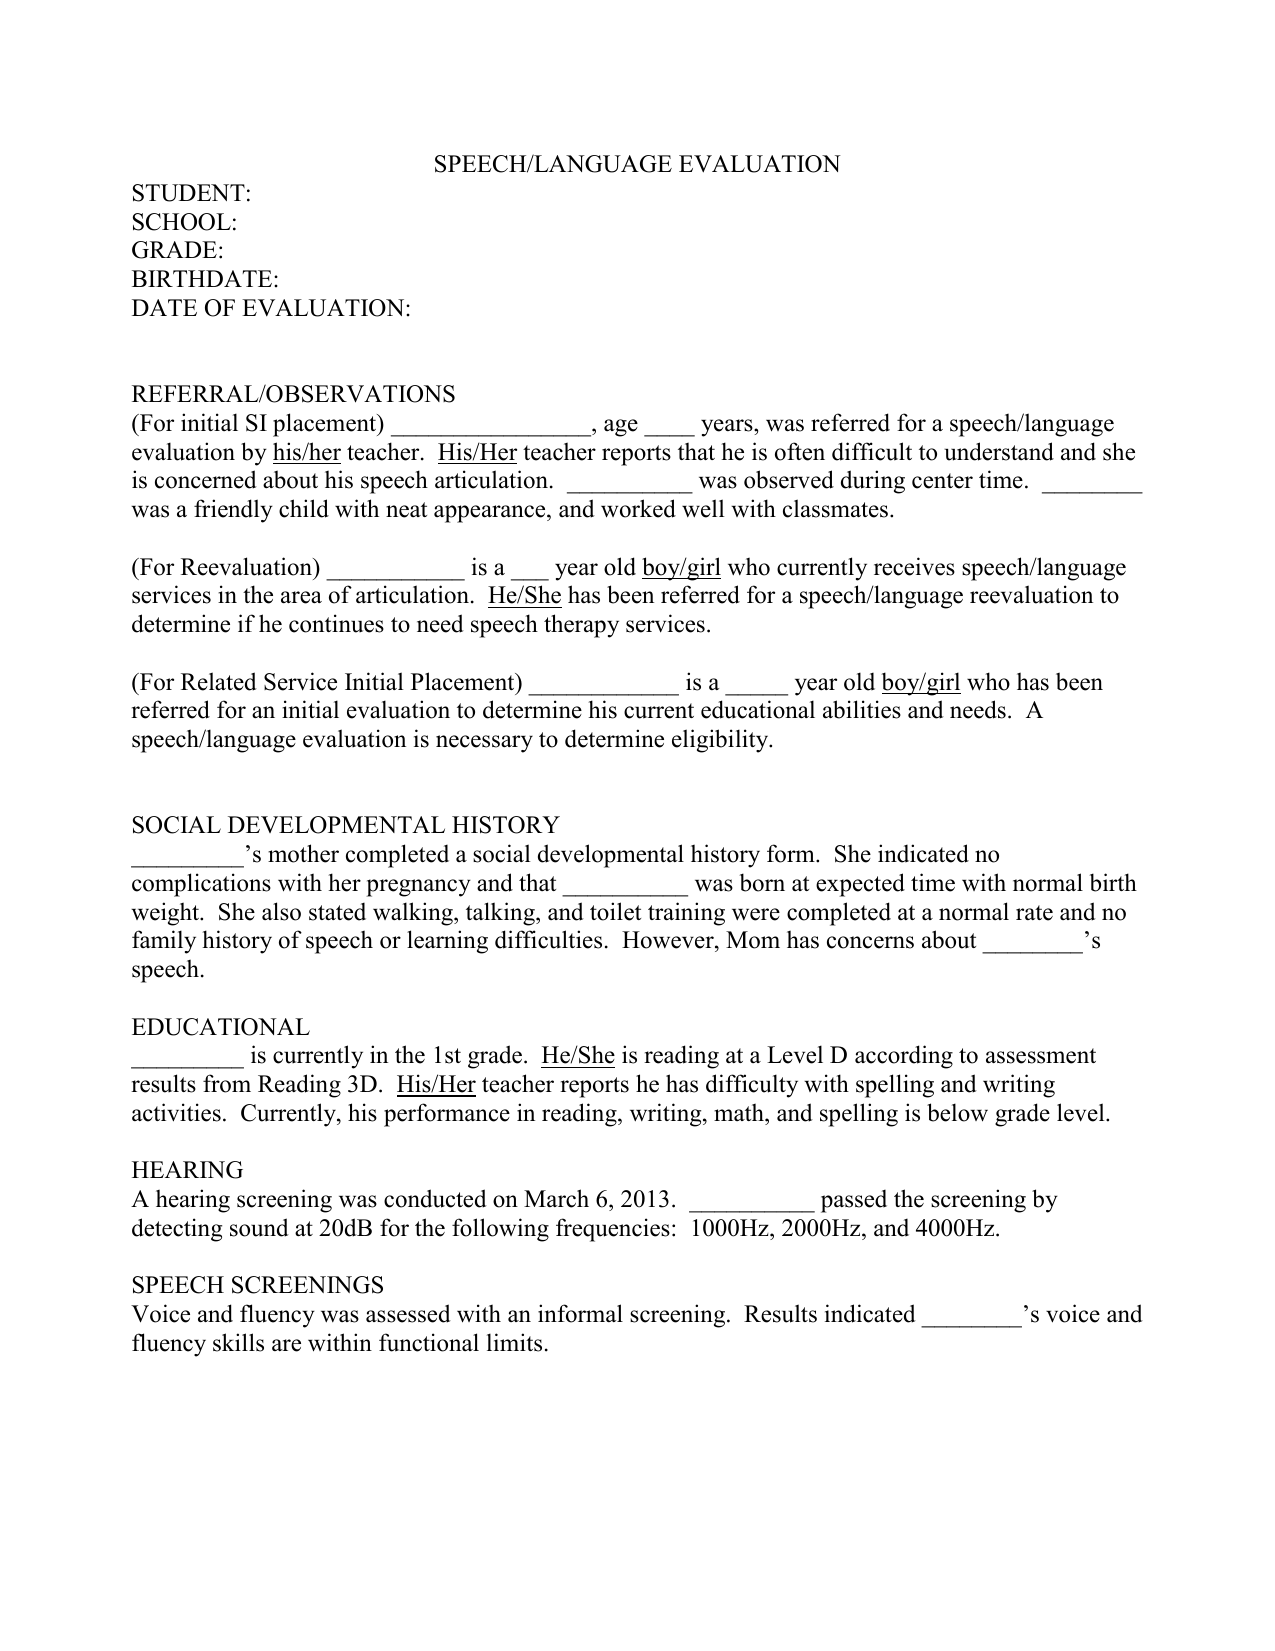 SPEECH-EVALUATION-REPORT-TEMPLATE-21 Pertaining To Speech And Language Report Template